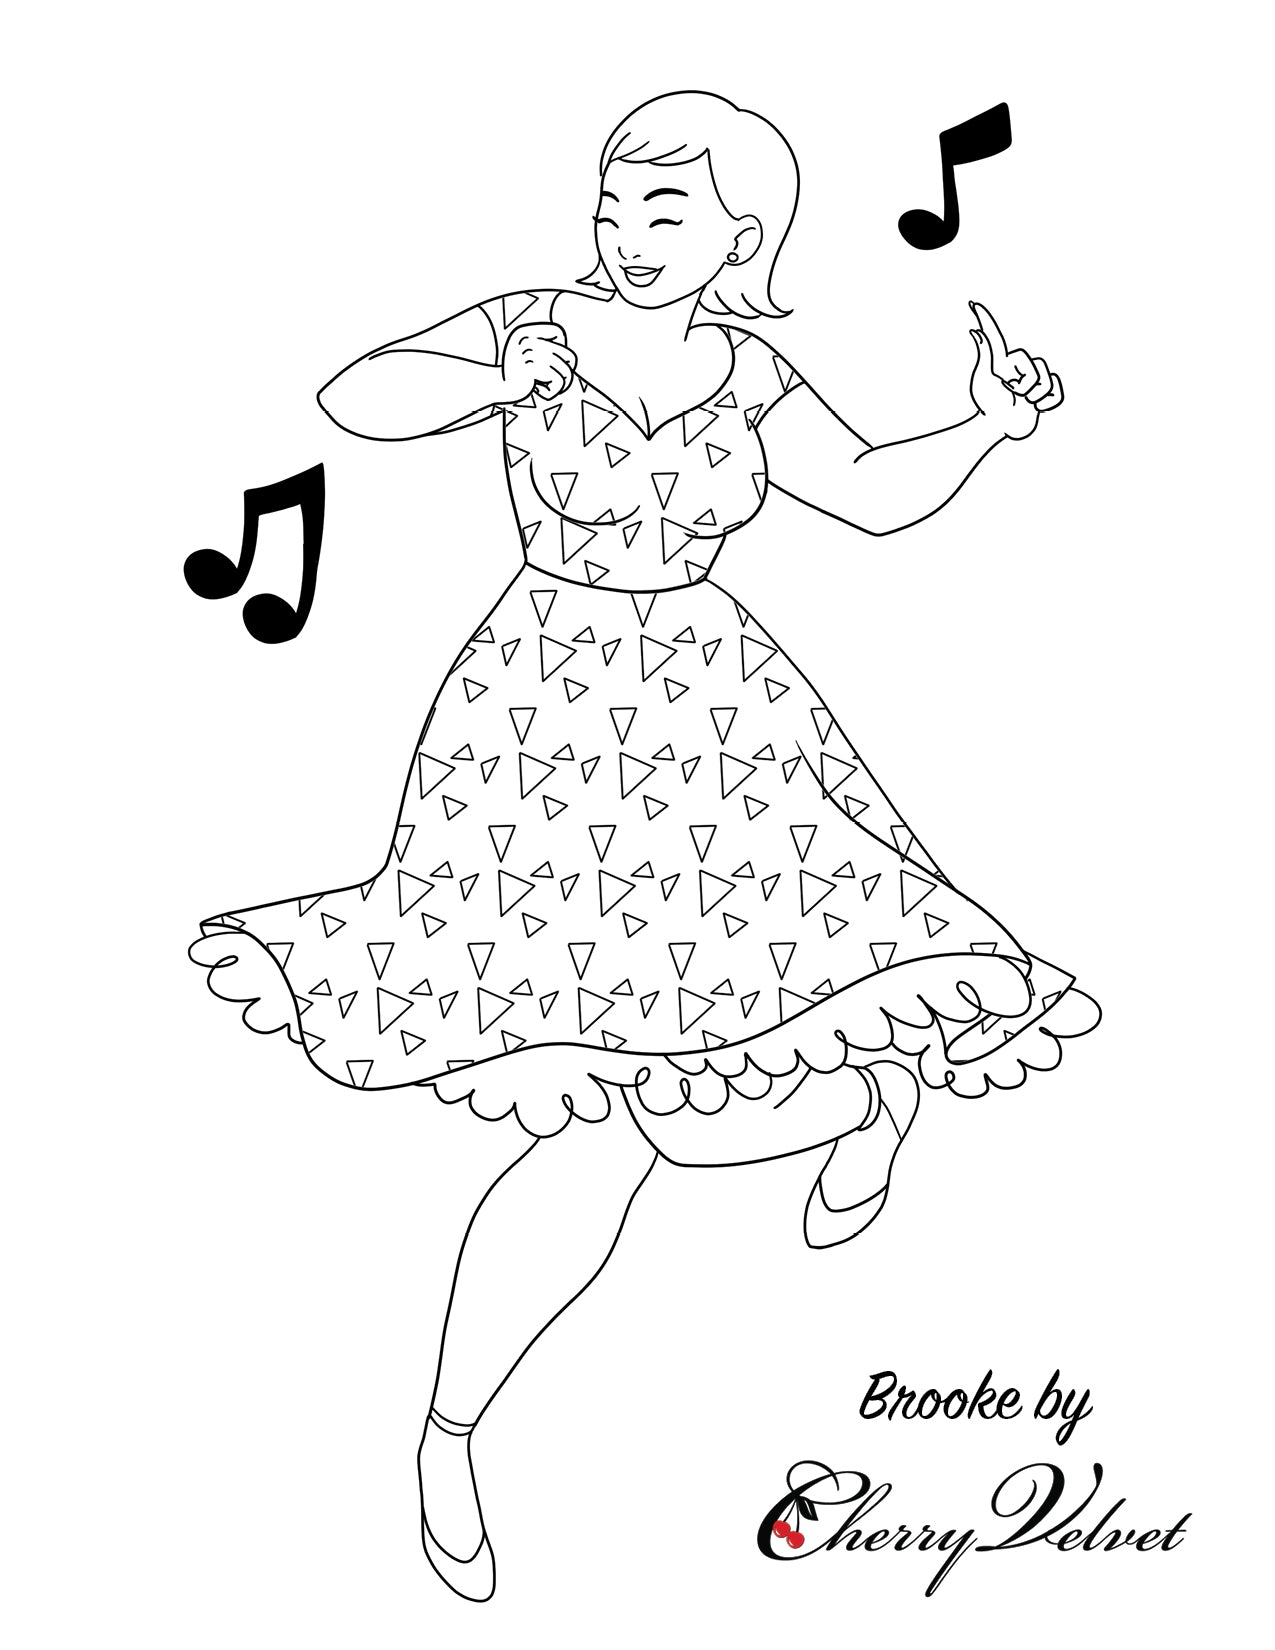 Brooke coloring page by Cherry Velvet